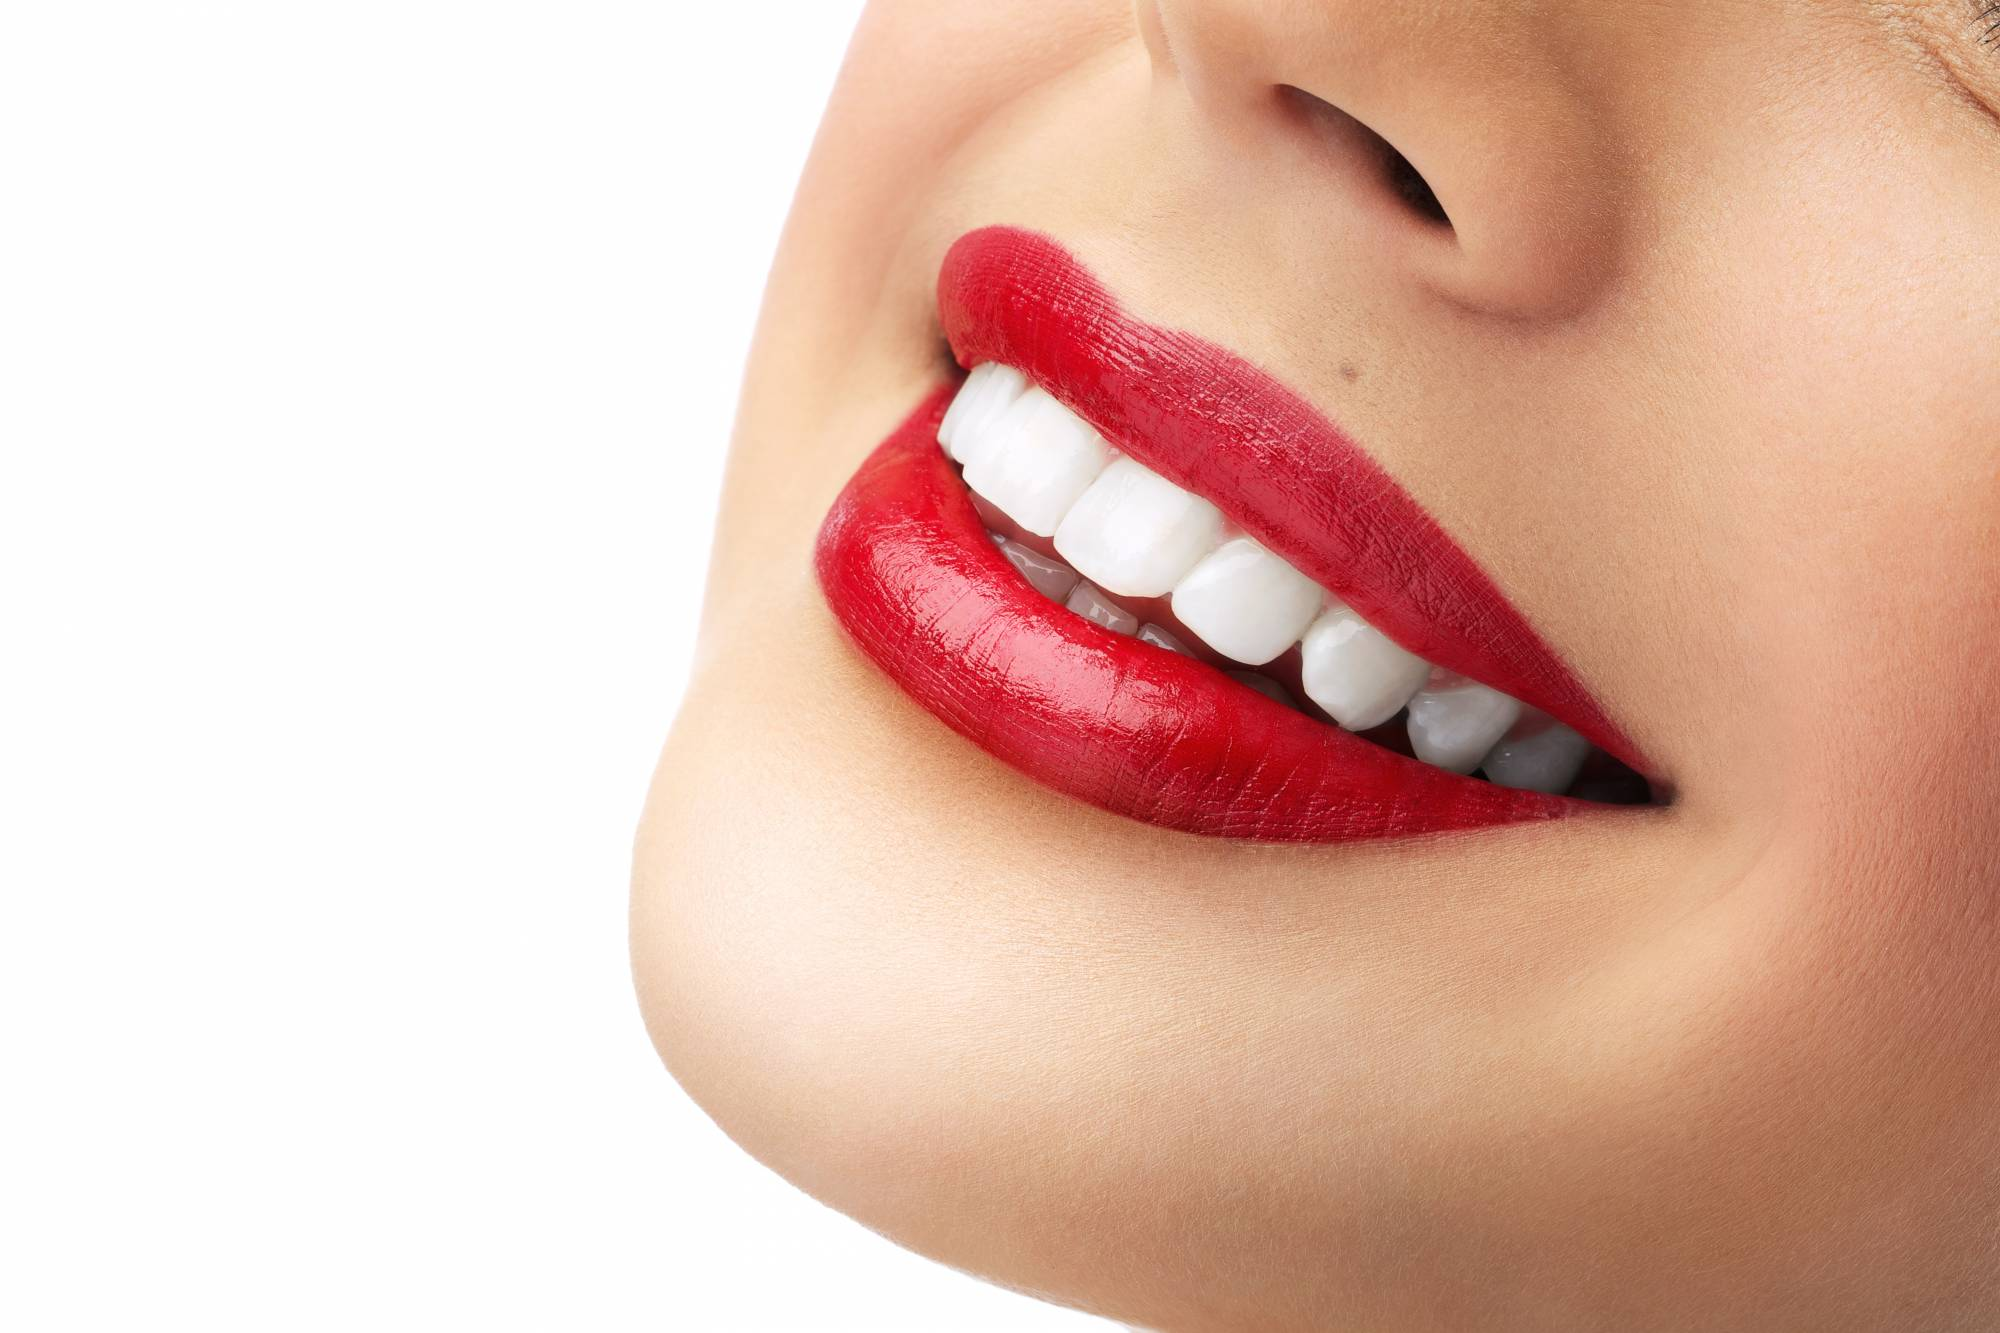 Closeup of woman with red lipstick and perfect teeth smiling